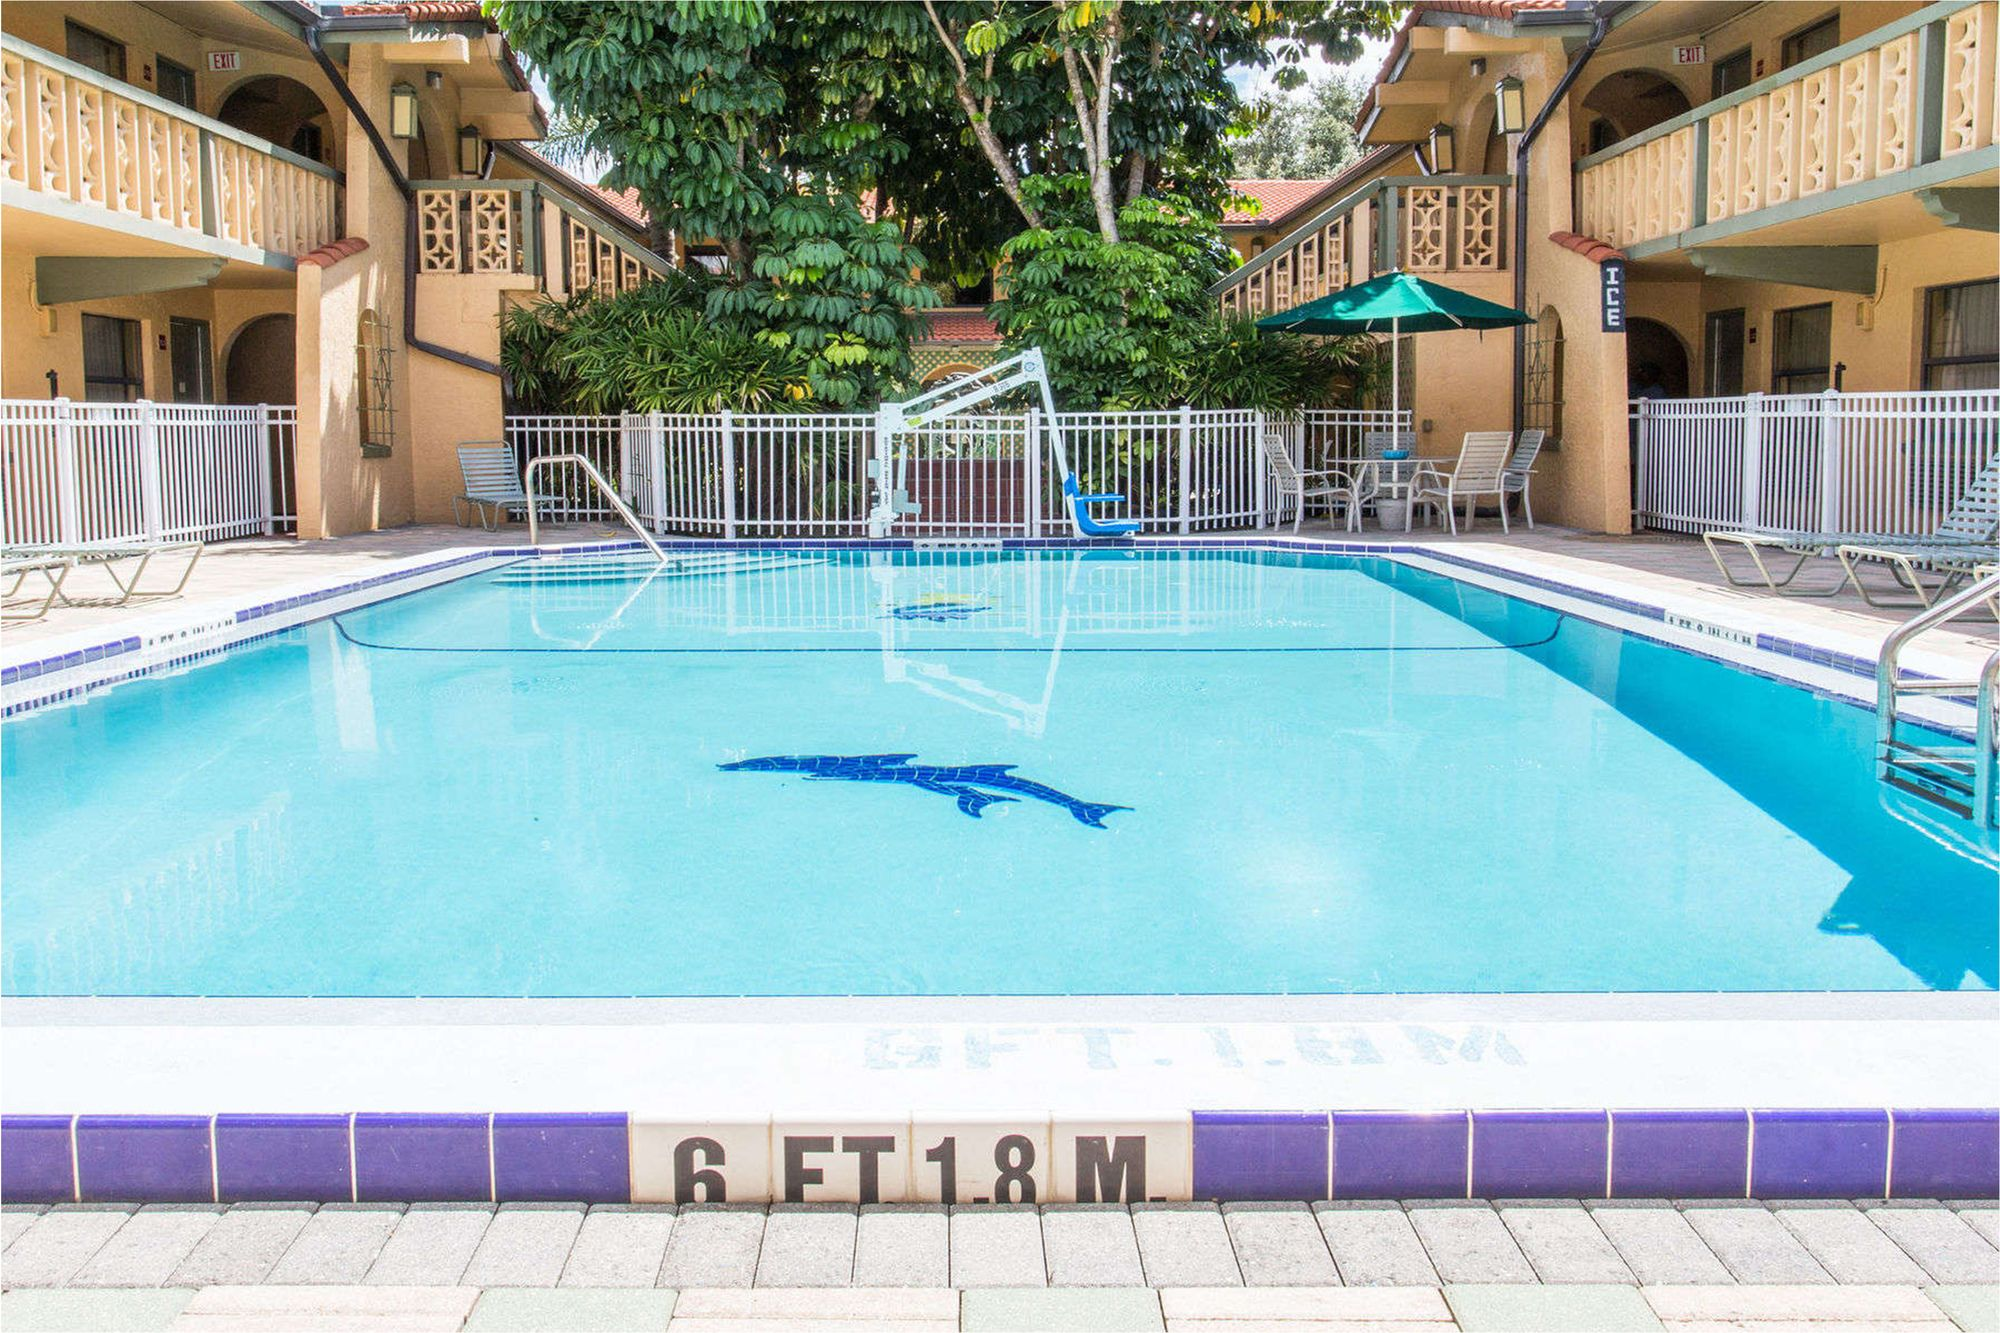 Altamonte Springs Hotel Coupons For Altamonte Springs Florida